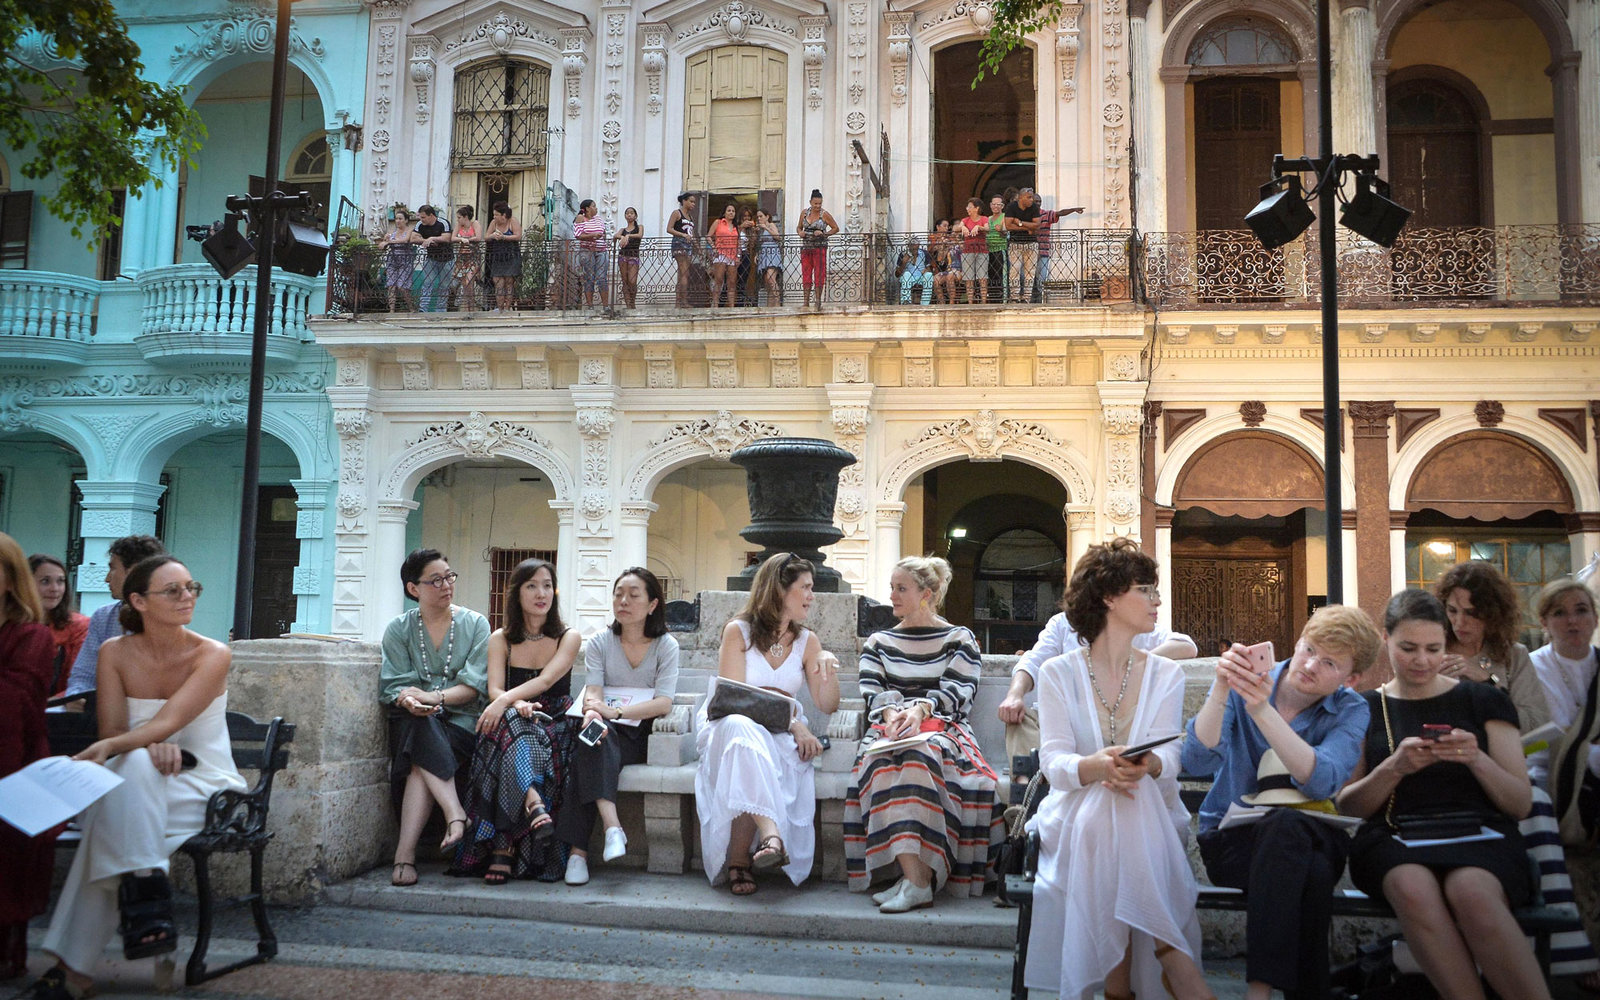 News: Chanel Gives Cuba its First Major Fashion Show